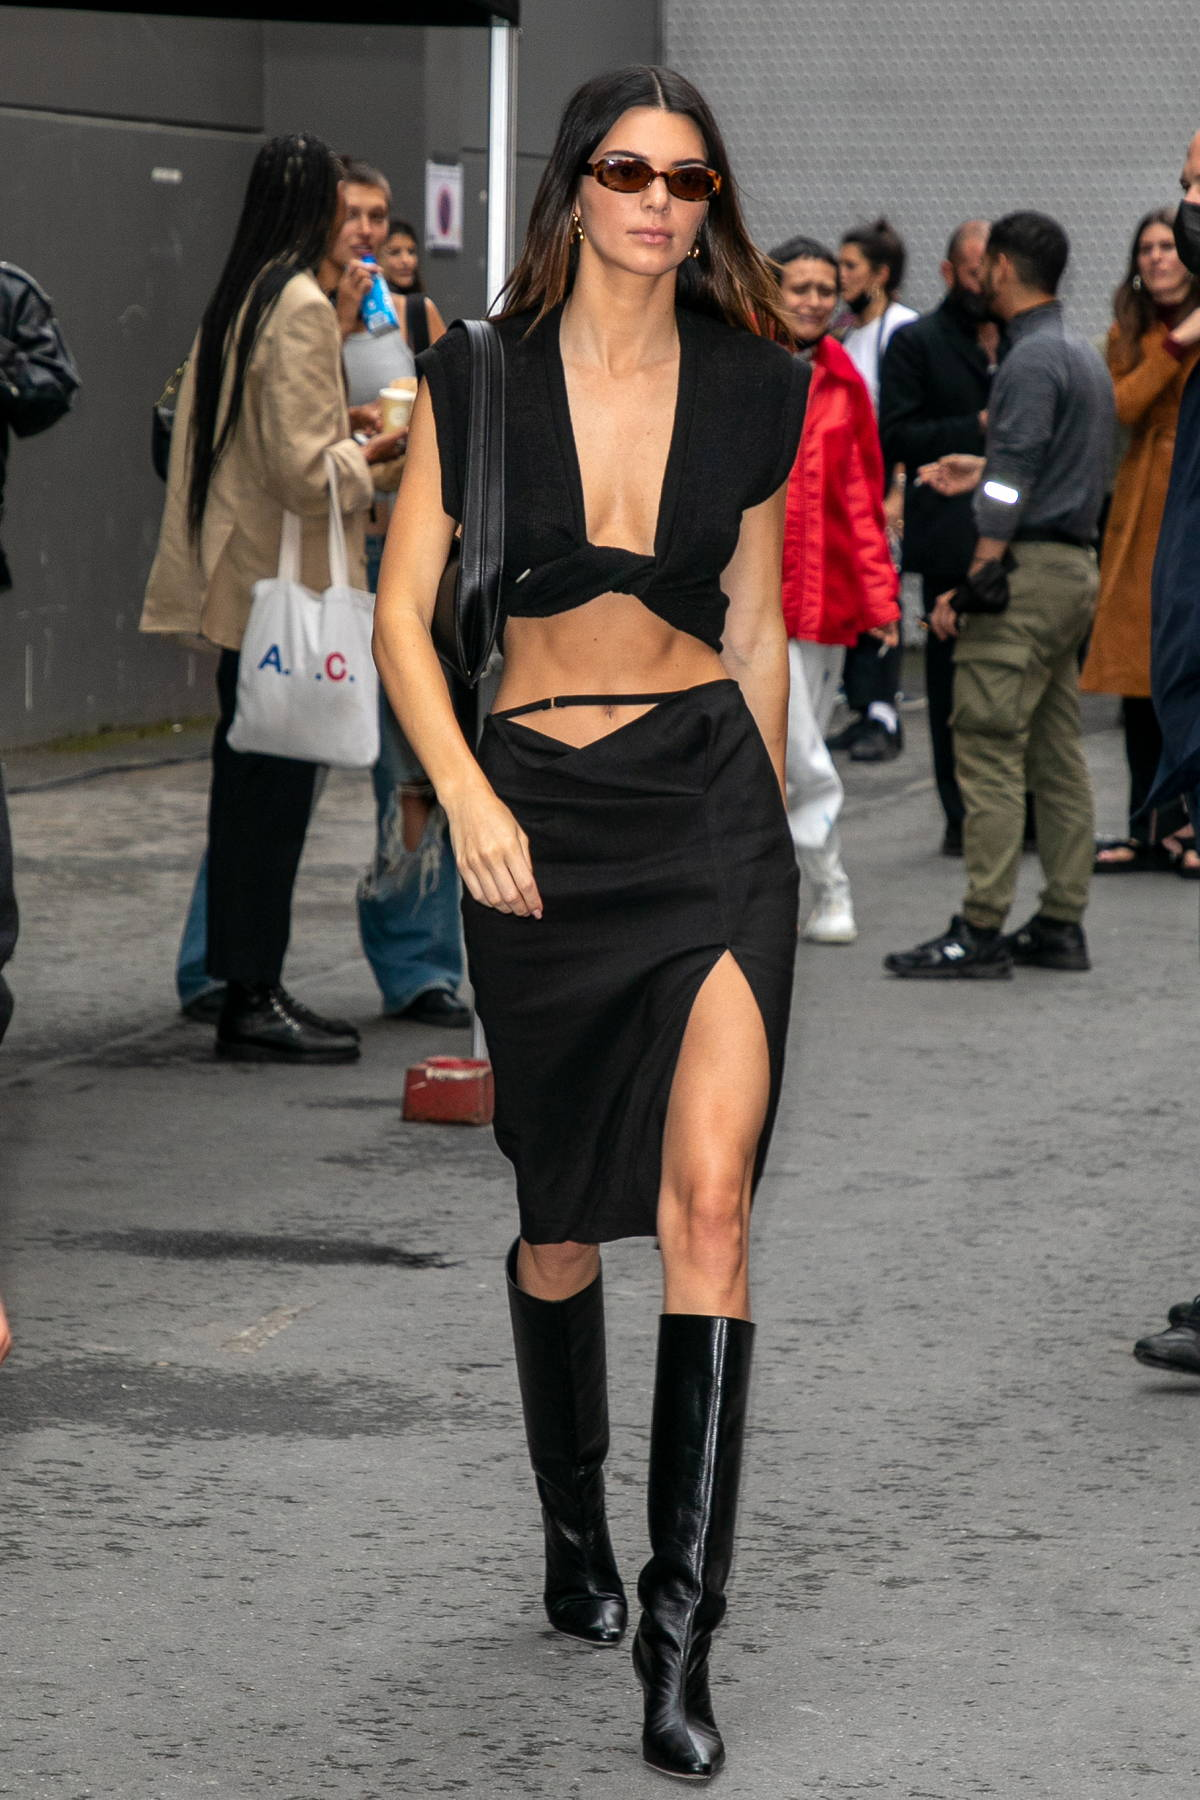 Kendall Jenner shows off her perfectly toned abs while leaving the Jacquemus show in Paris, France